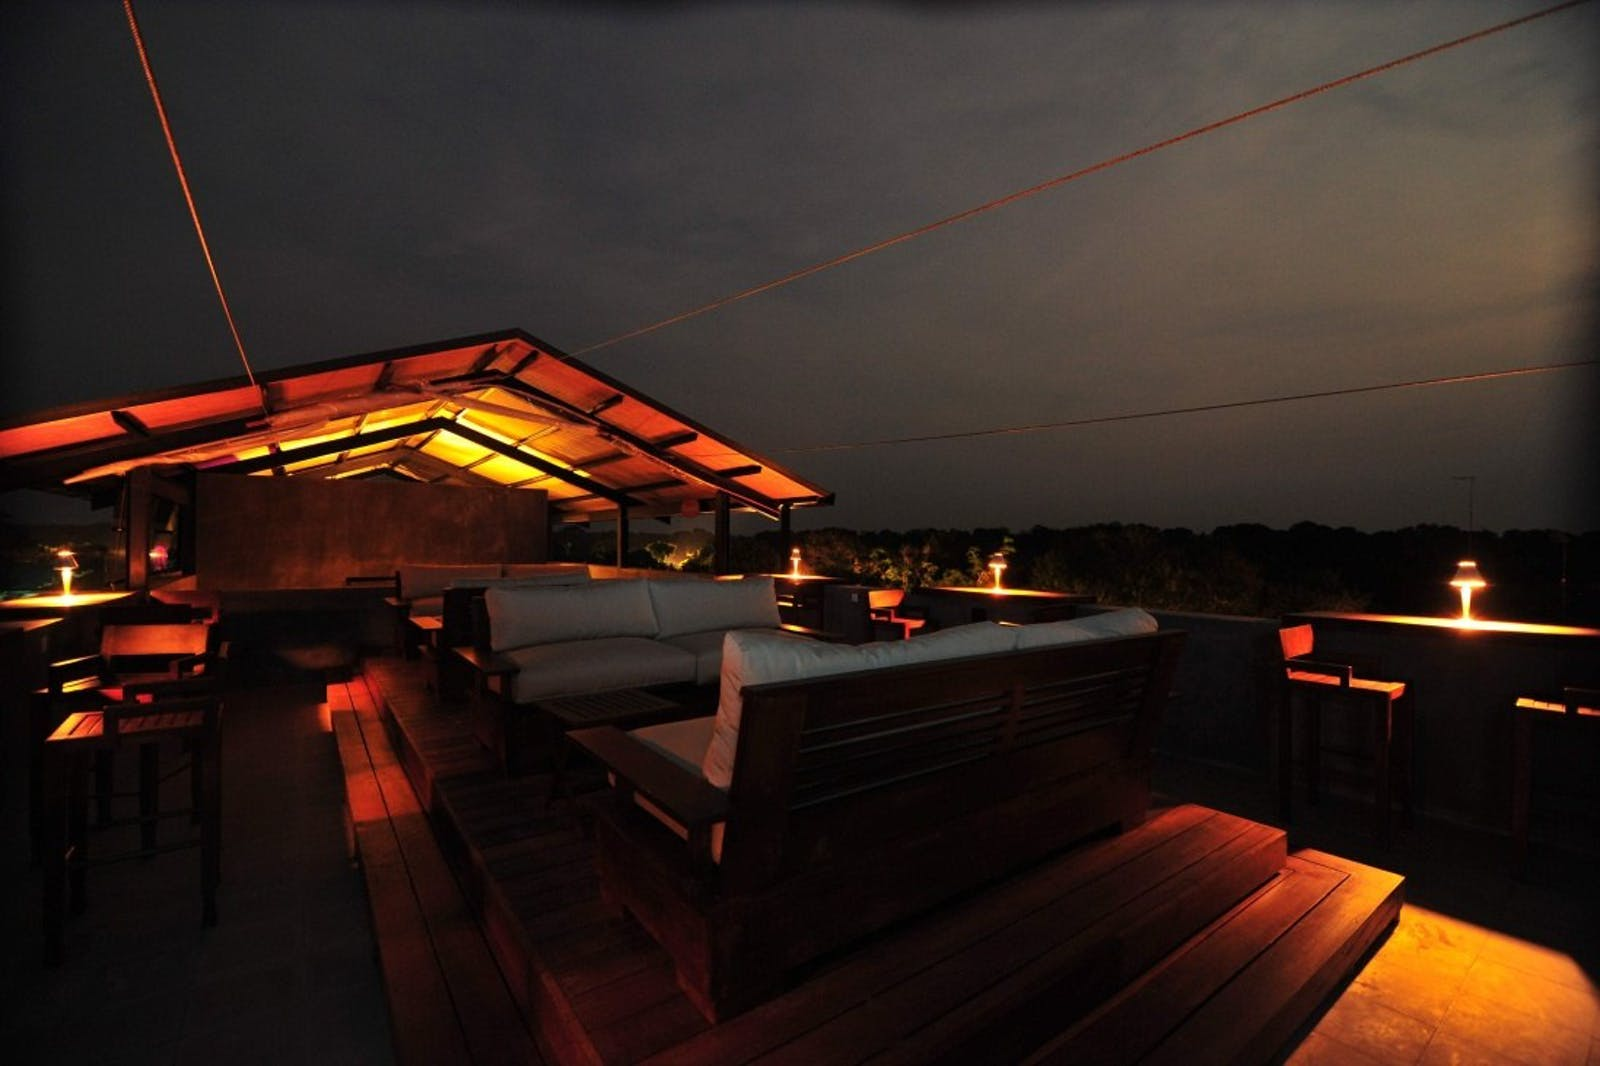 Observation deck at night at Cinnamon Wild, Sri Lanka